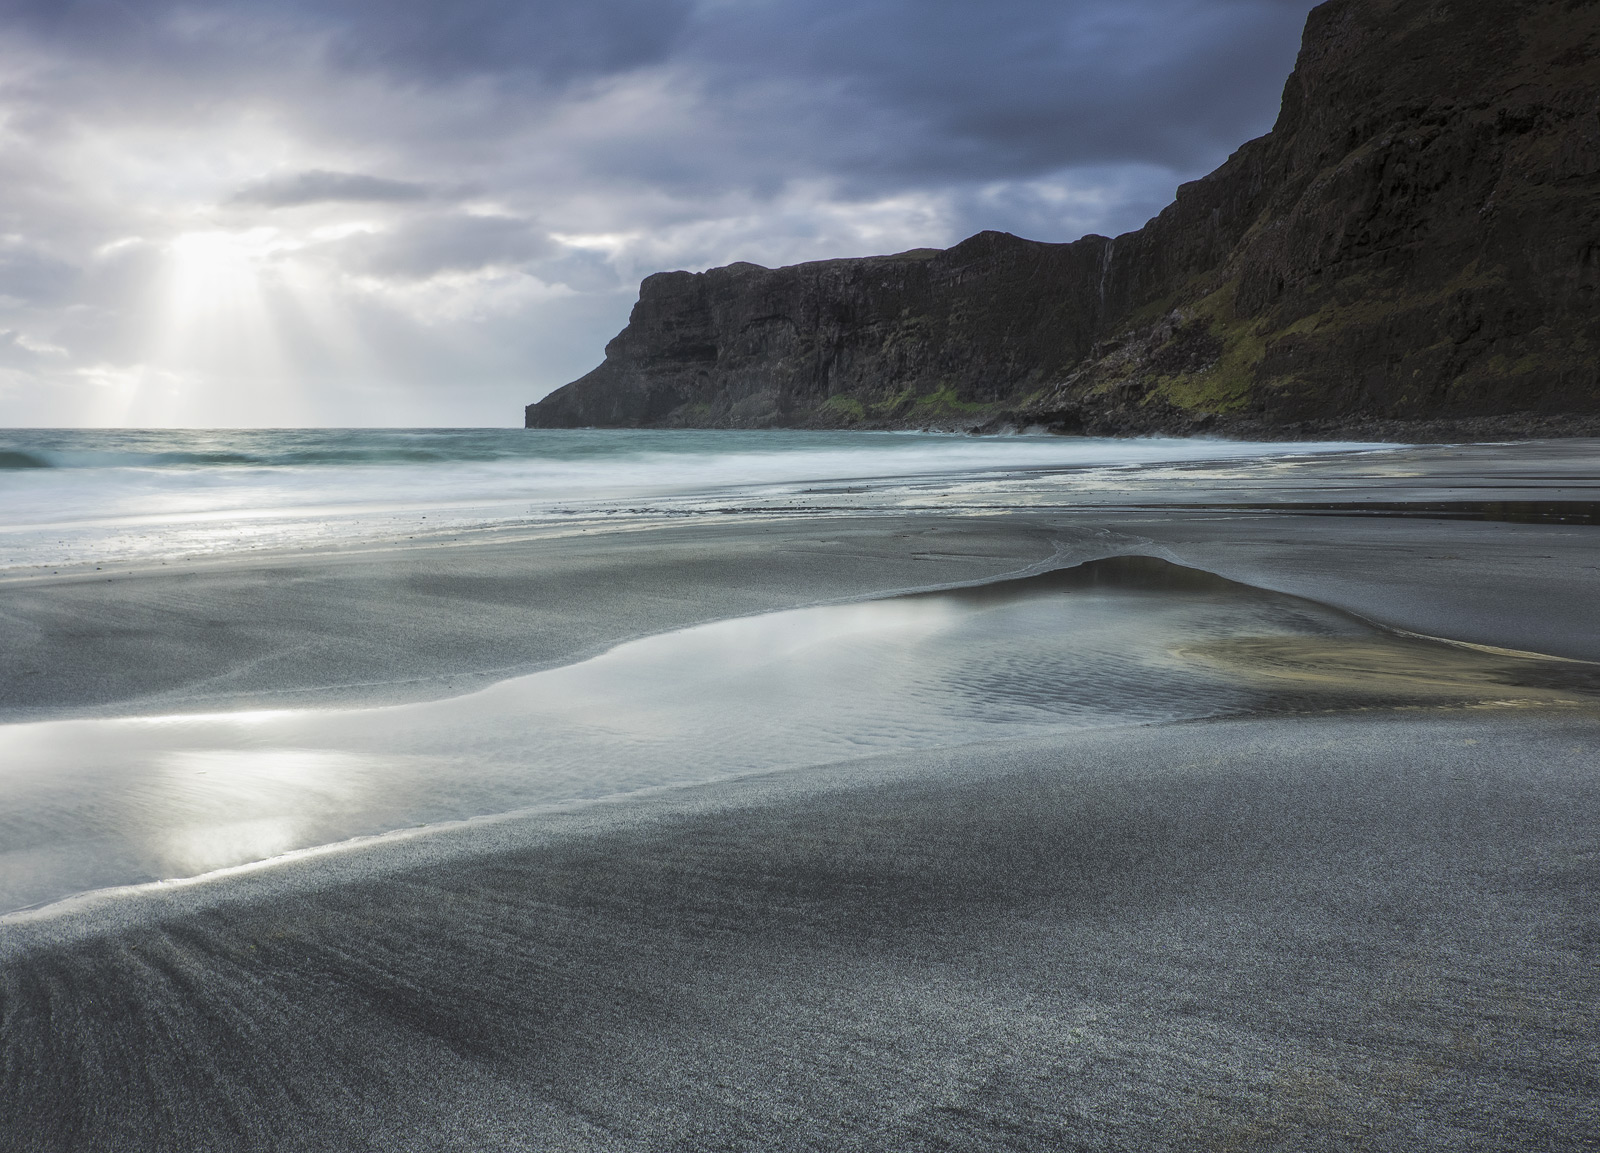 Talisker bay at sunset gazing across the unblemished marbled sands towards the black cliffs and the wispy waterfall that mistily...